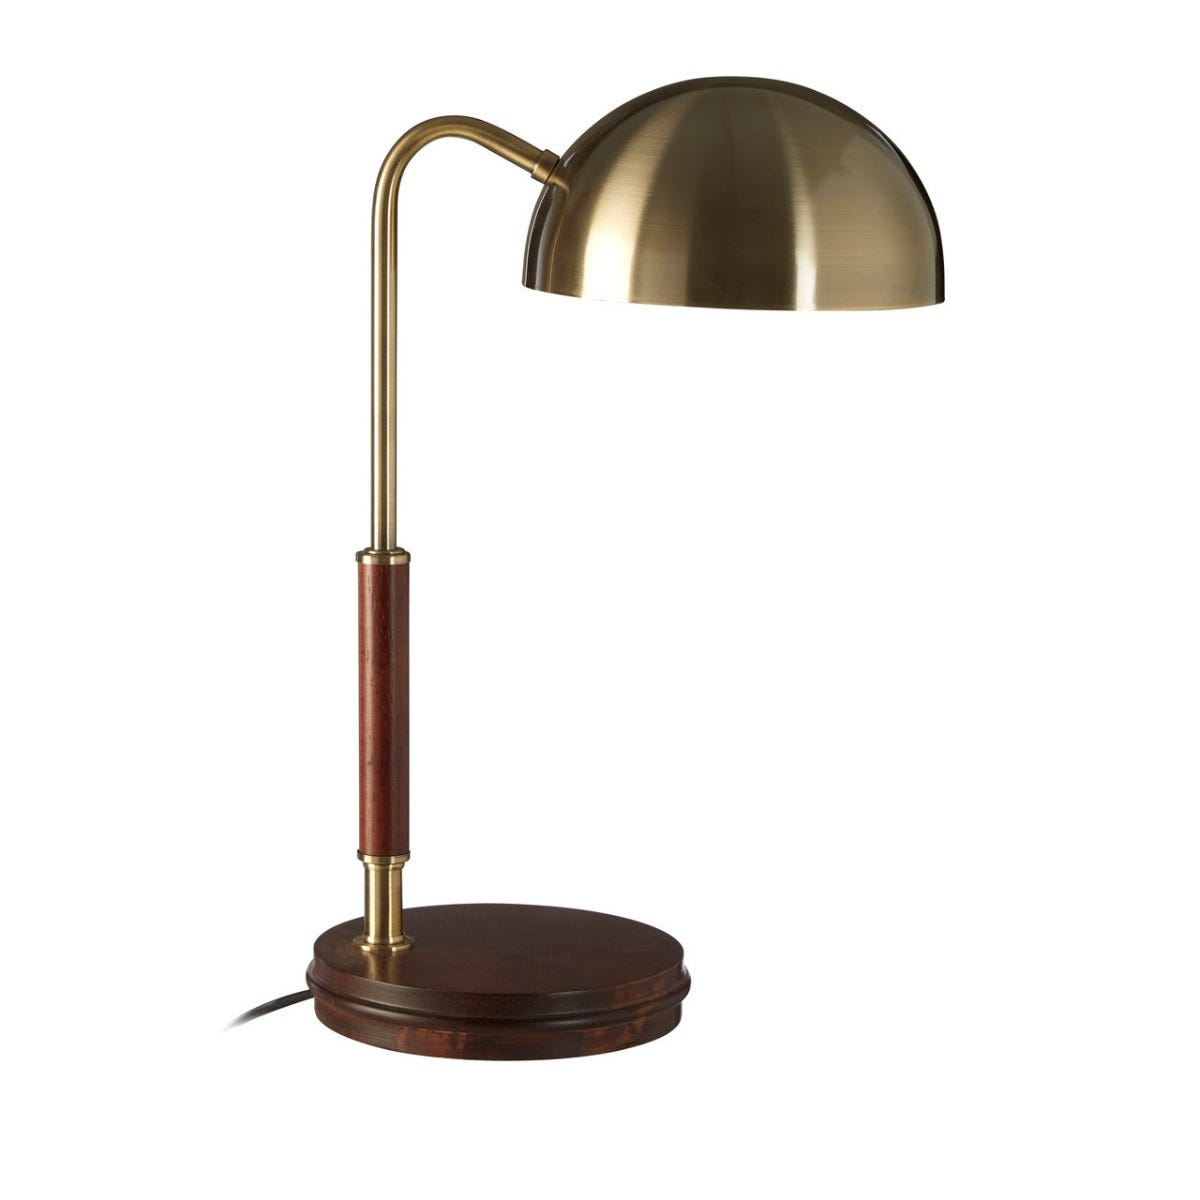 Interiors By Premier Table Lamp Antique Brass Finish With Real Wood Base